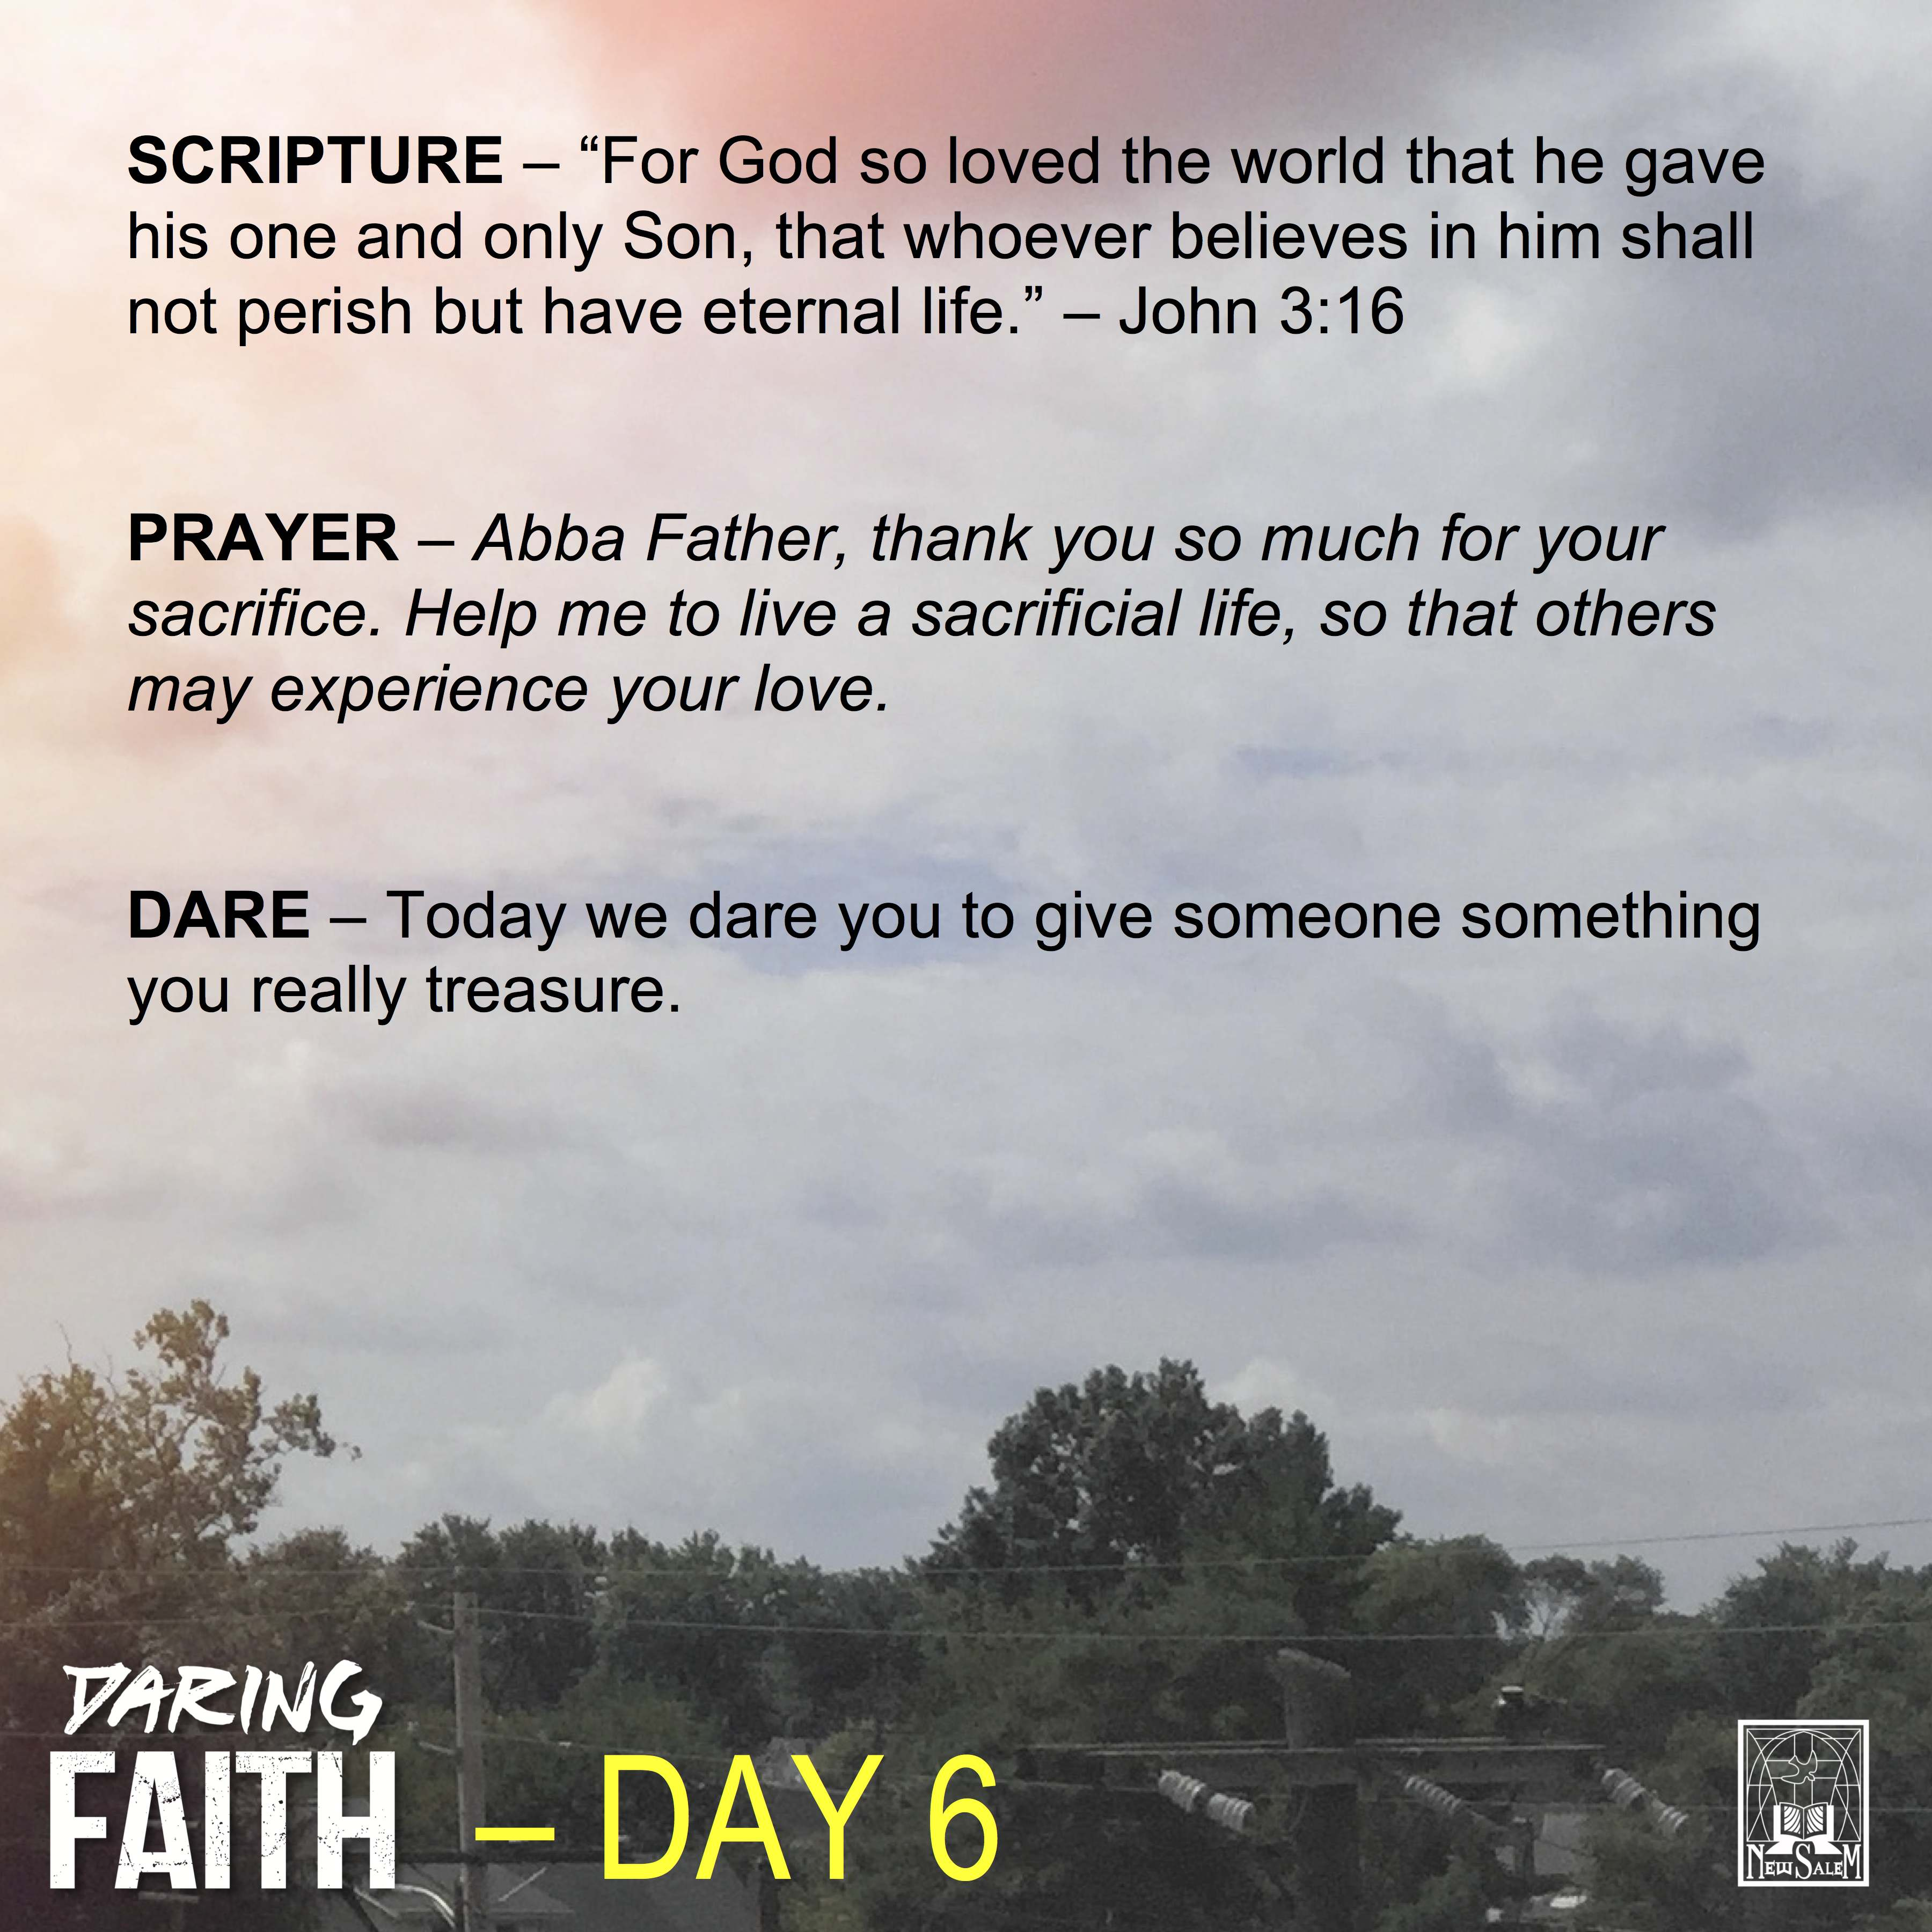 Daring Faith Devotional - Day 6